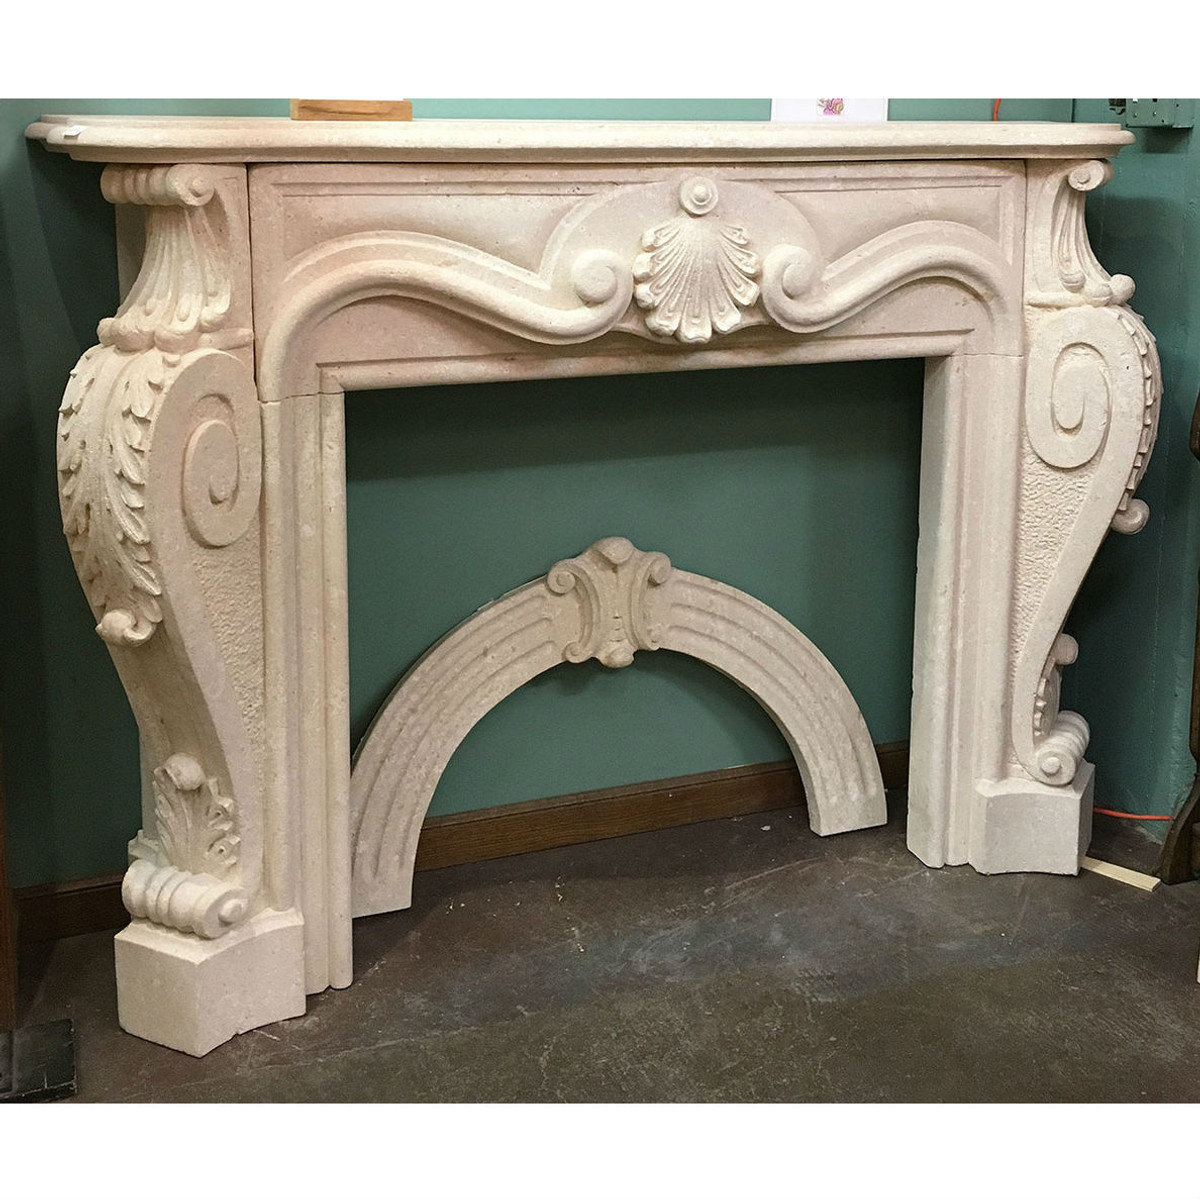 M17006 - Contemporary Cast Stone Fireplace Half Mantel